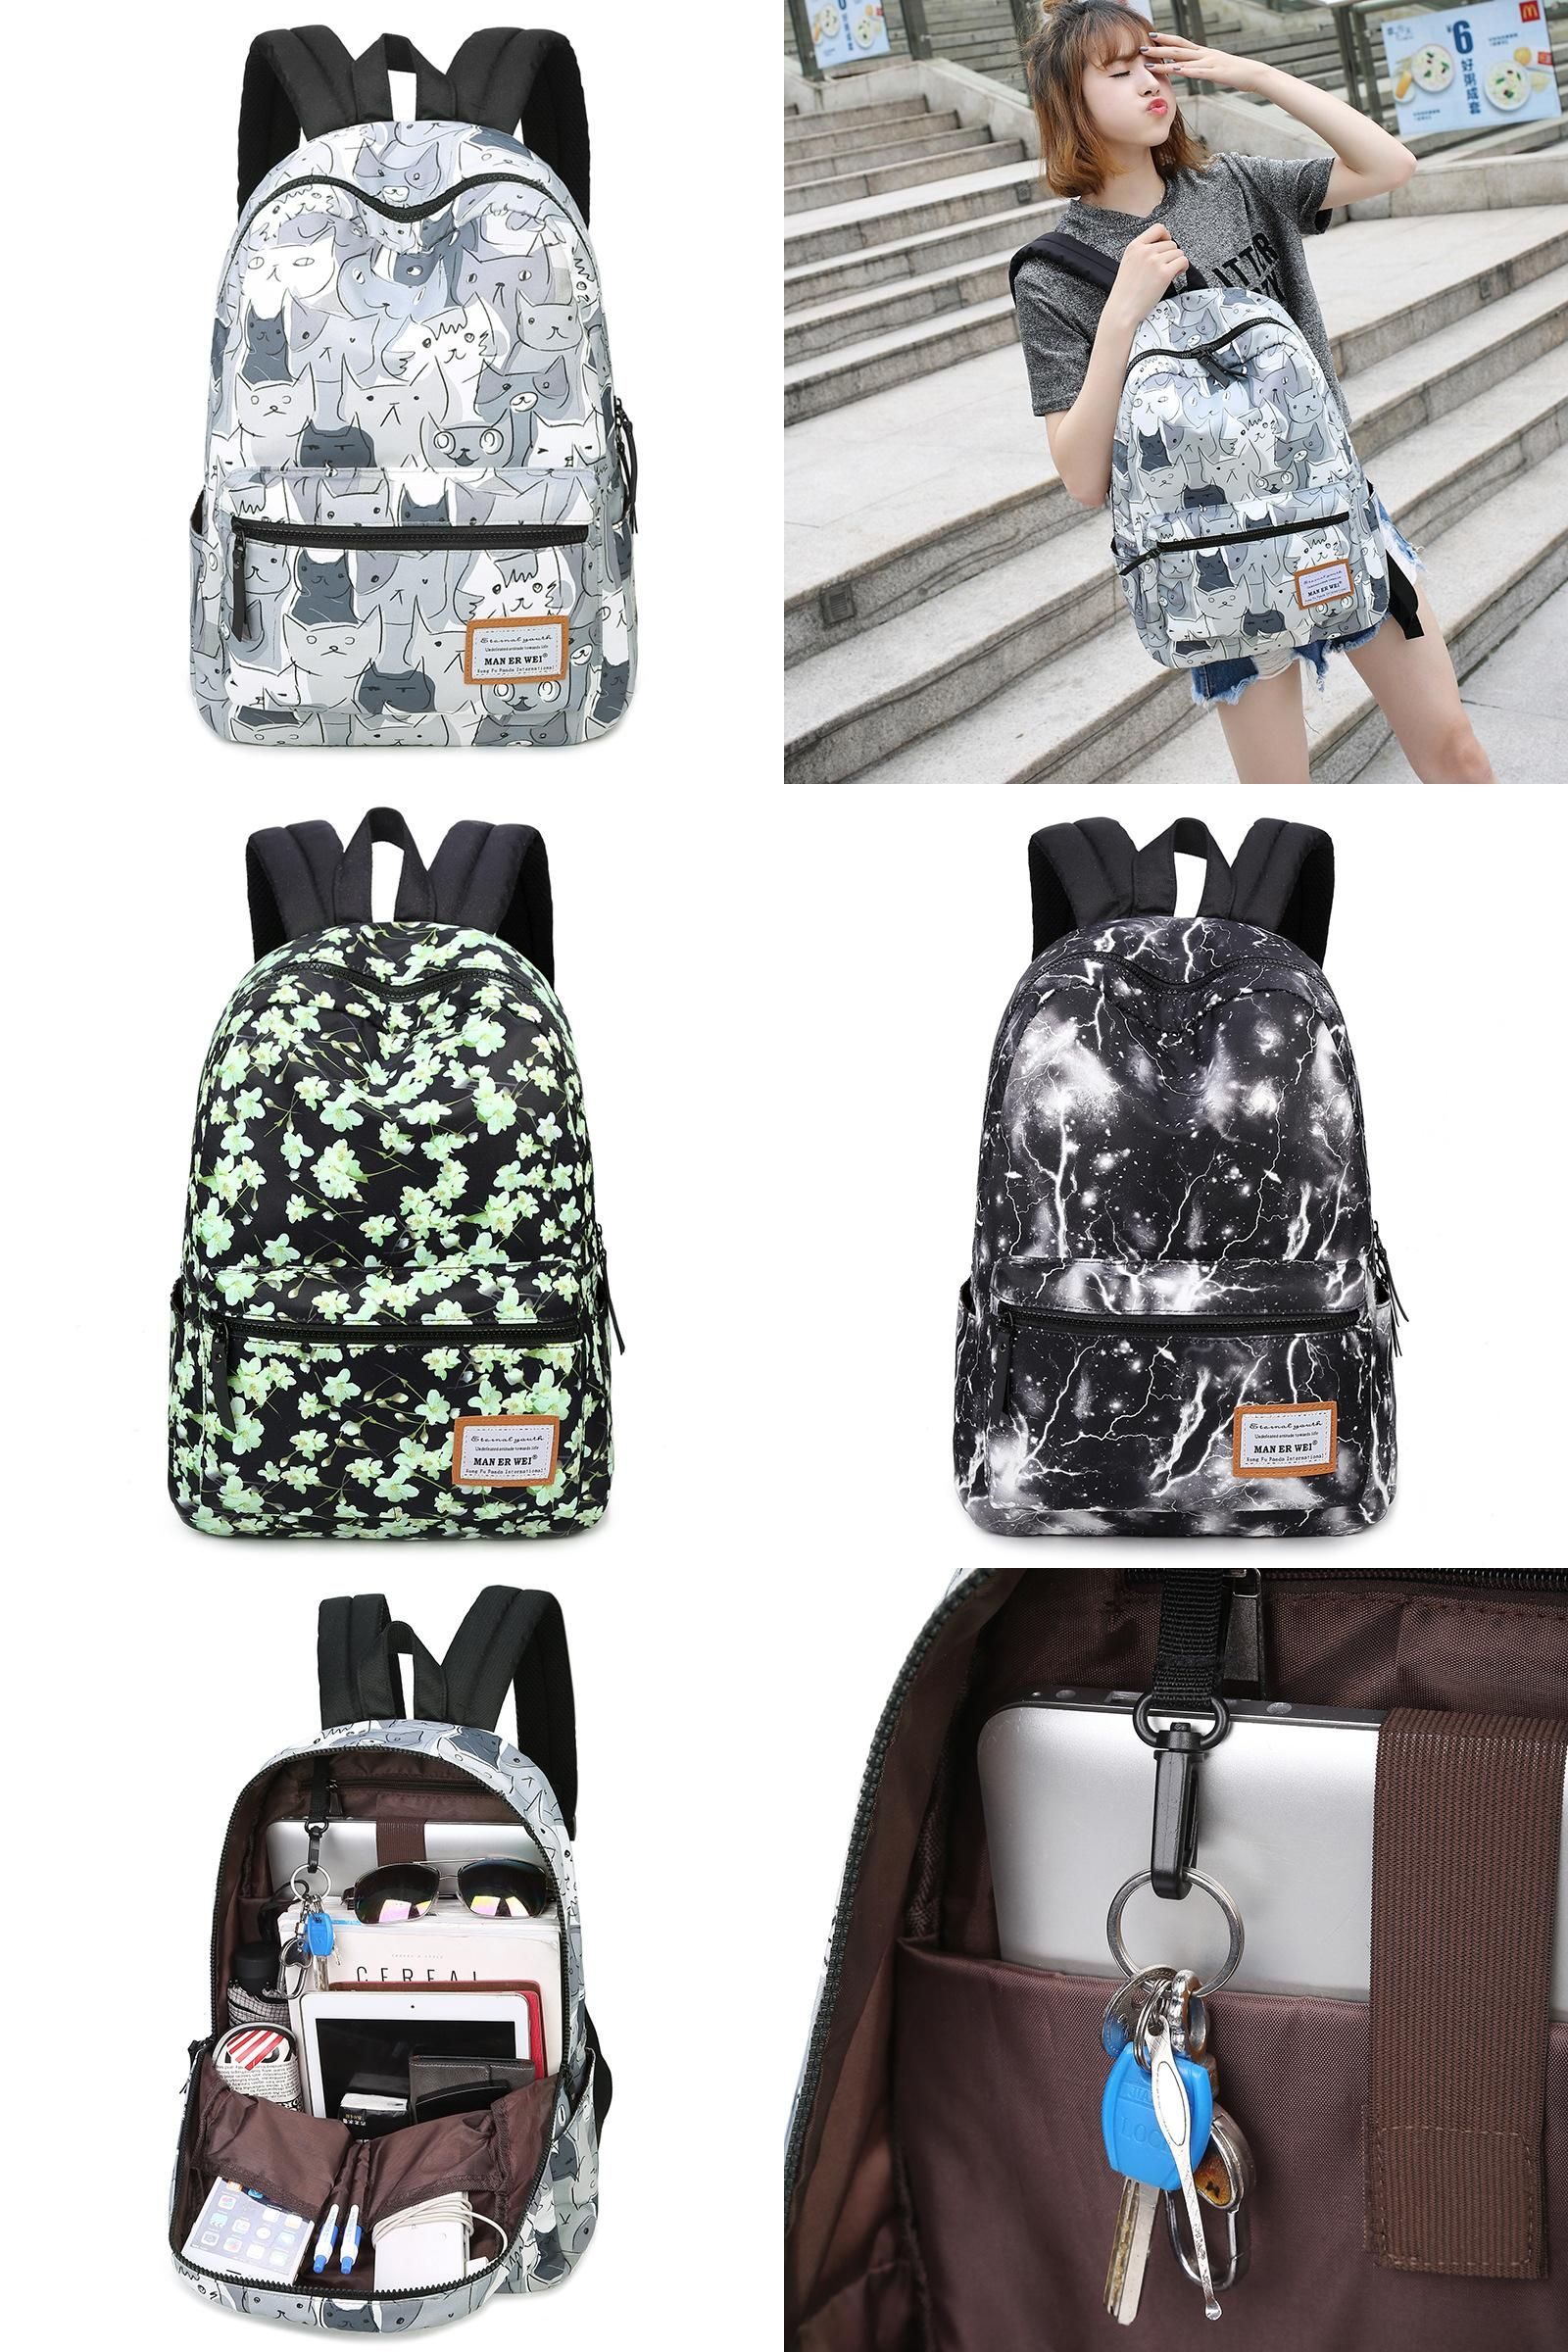 cef5e8012c Visit to Buy] MAN ER WEI Cat Printing Backpack Fashion Canvas ...